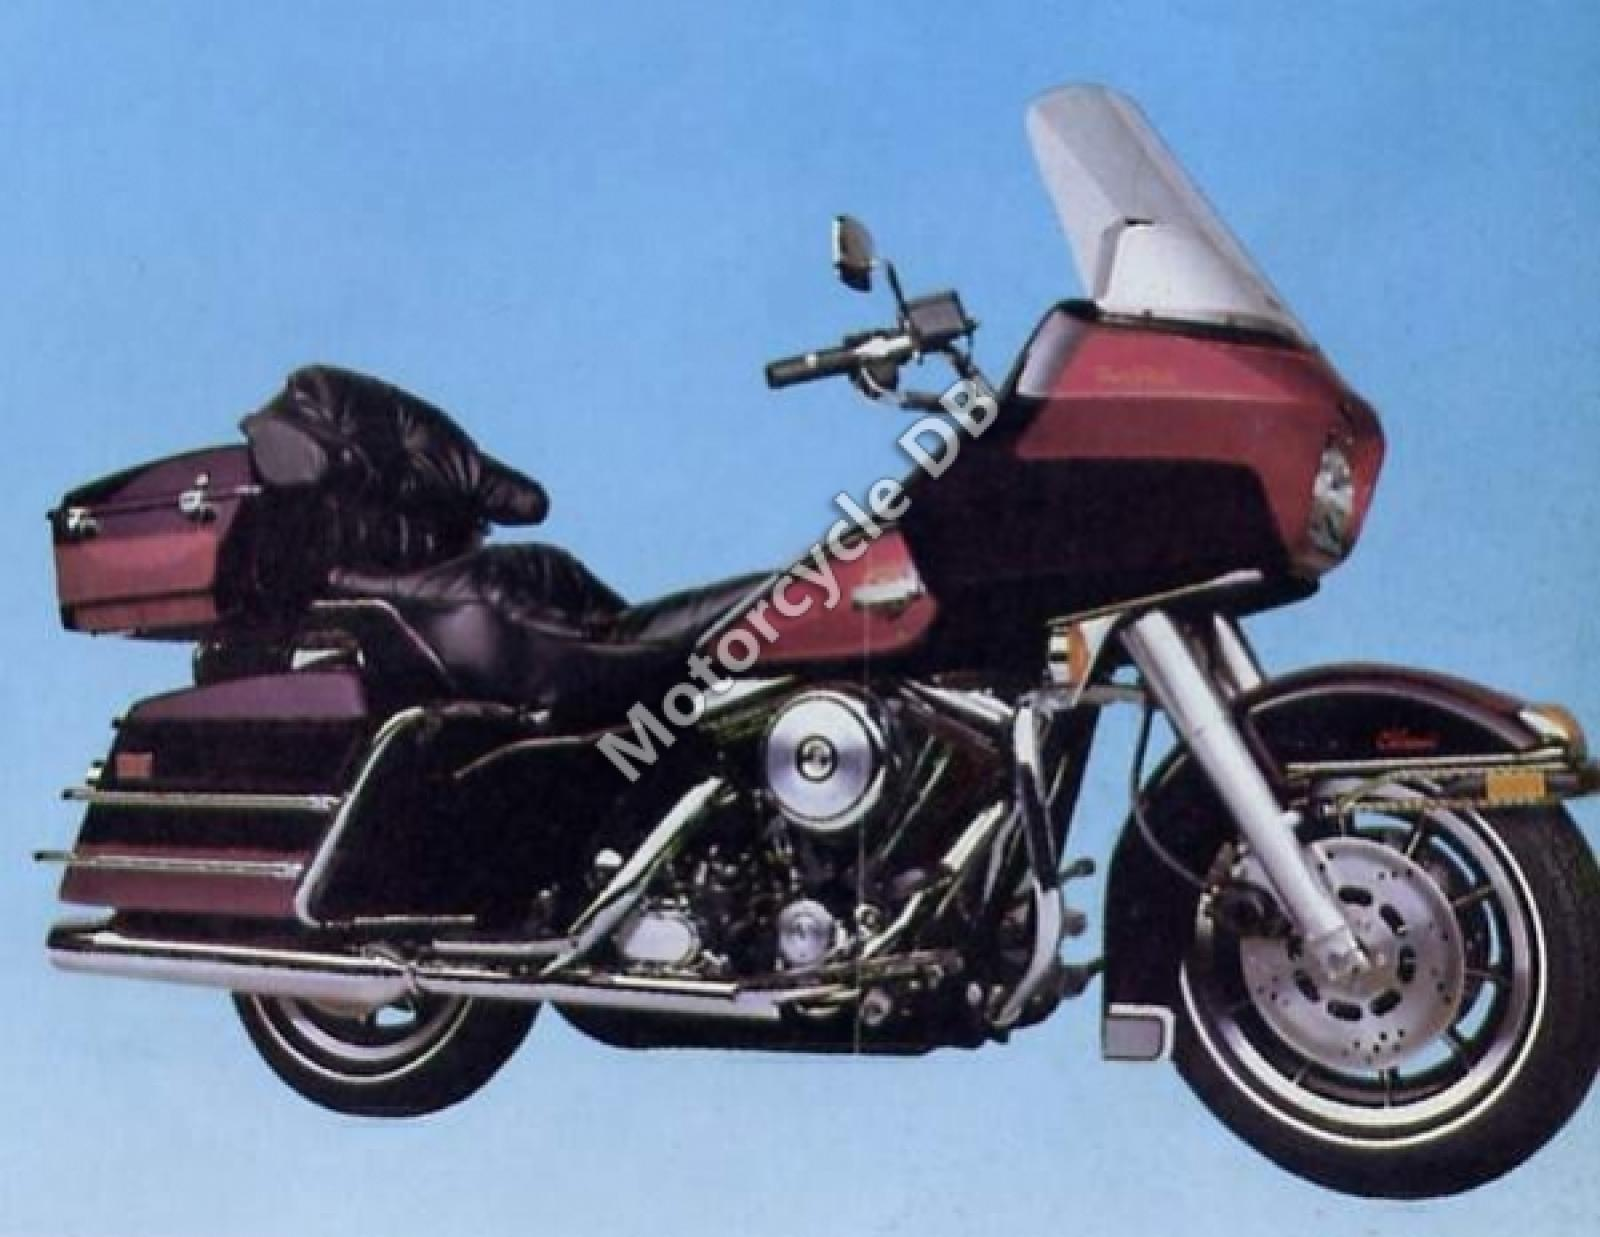 Harley-Davidson FLHTC 1340 Electra Glide Classic images #80604